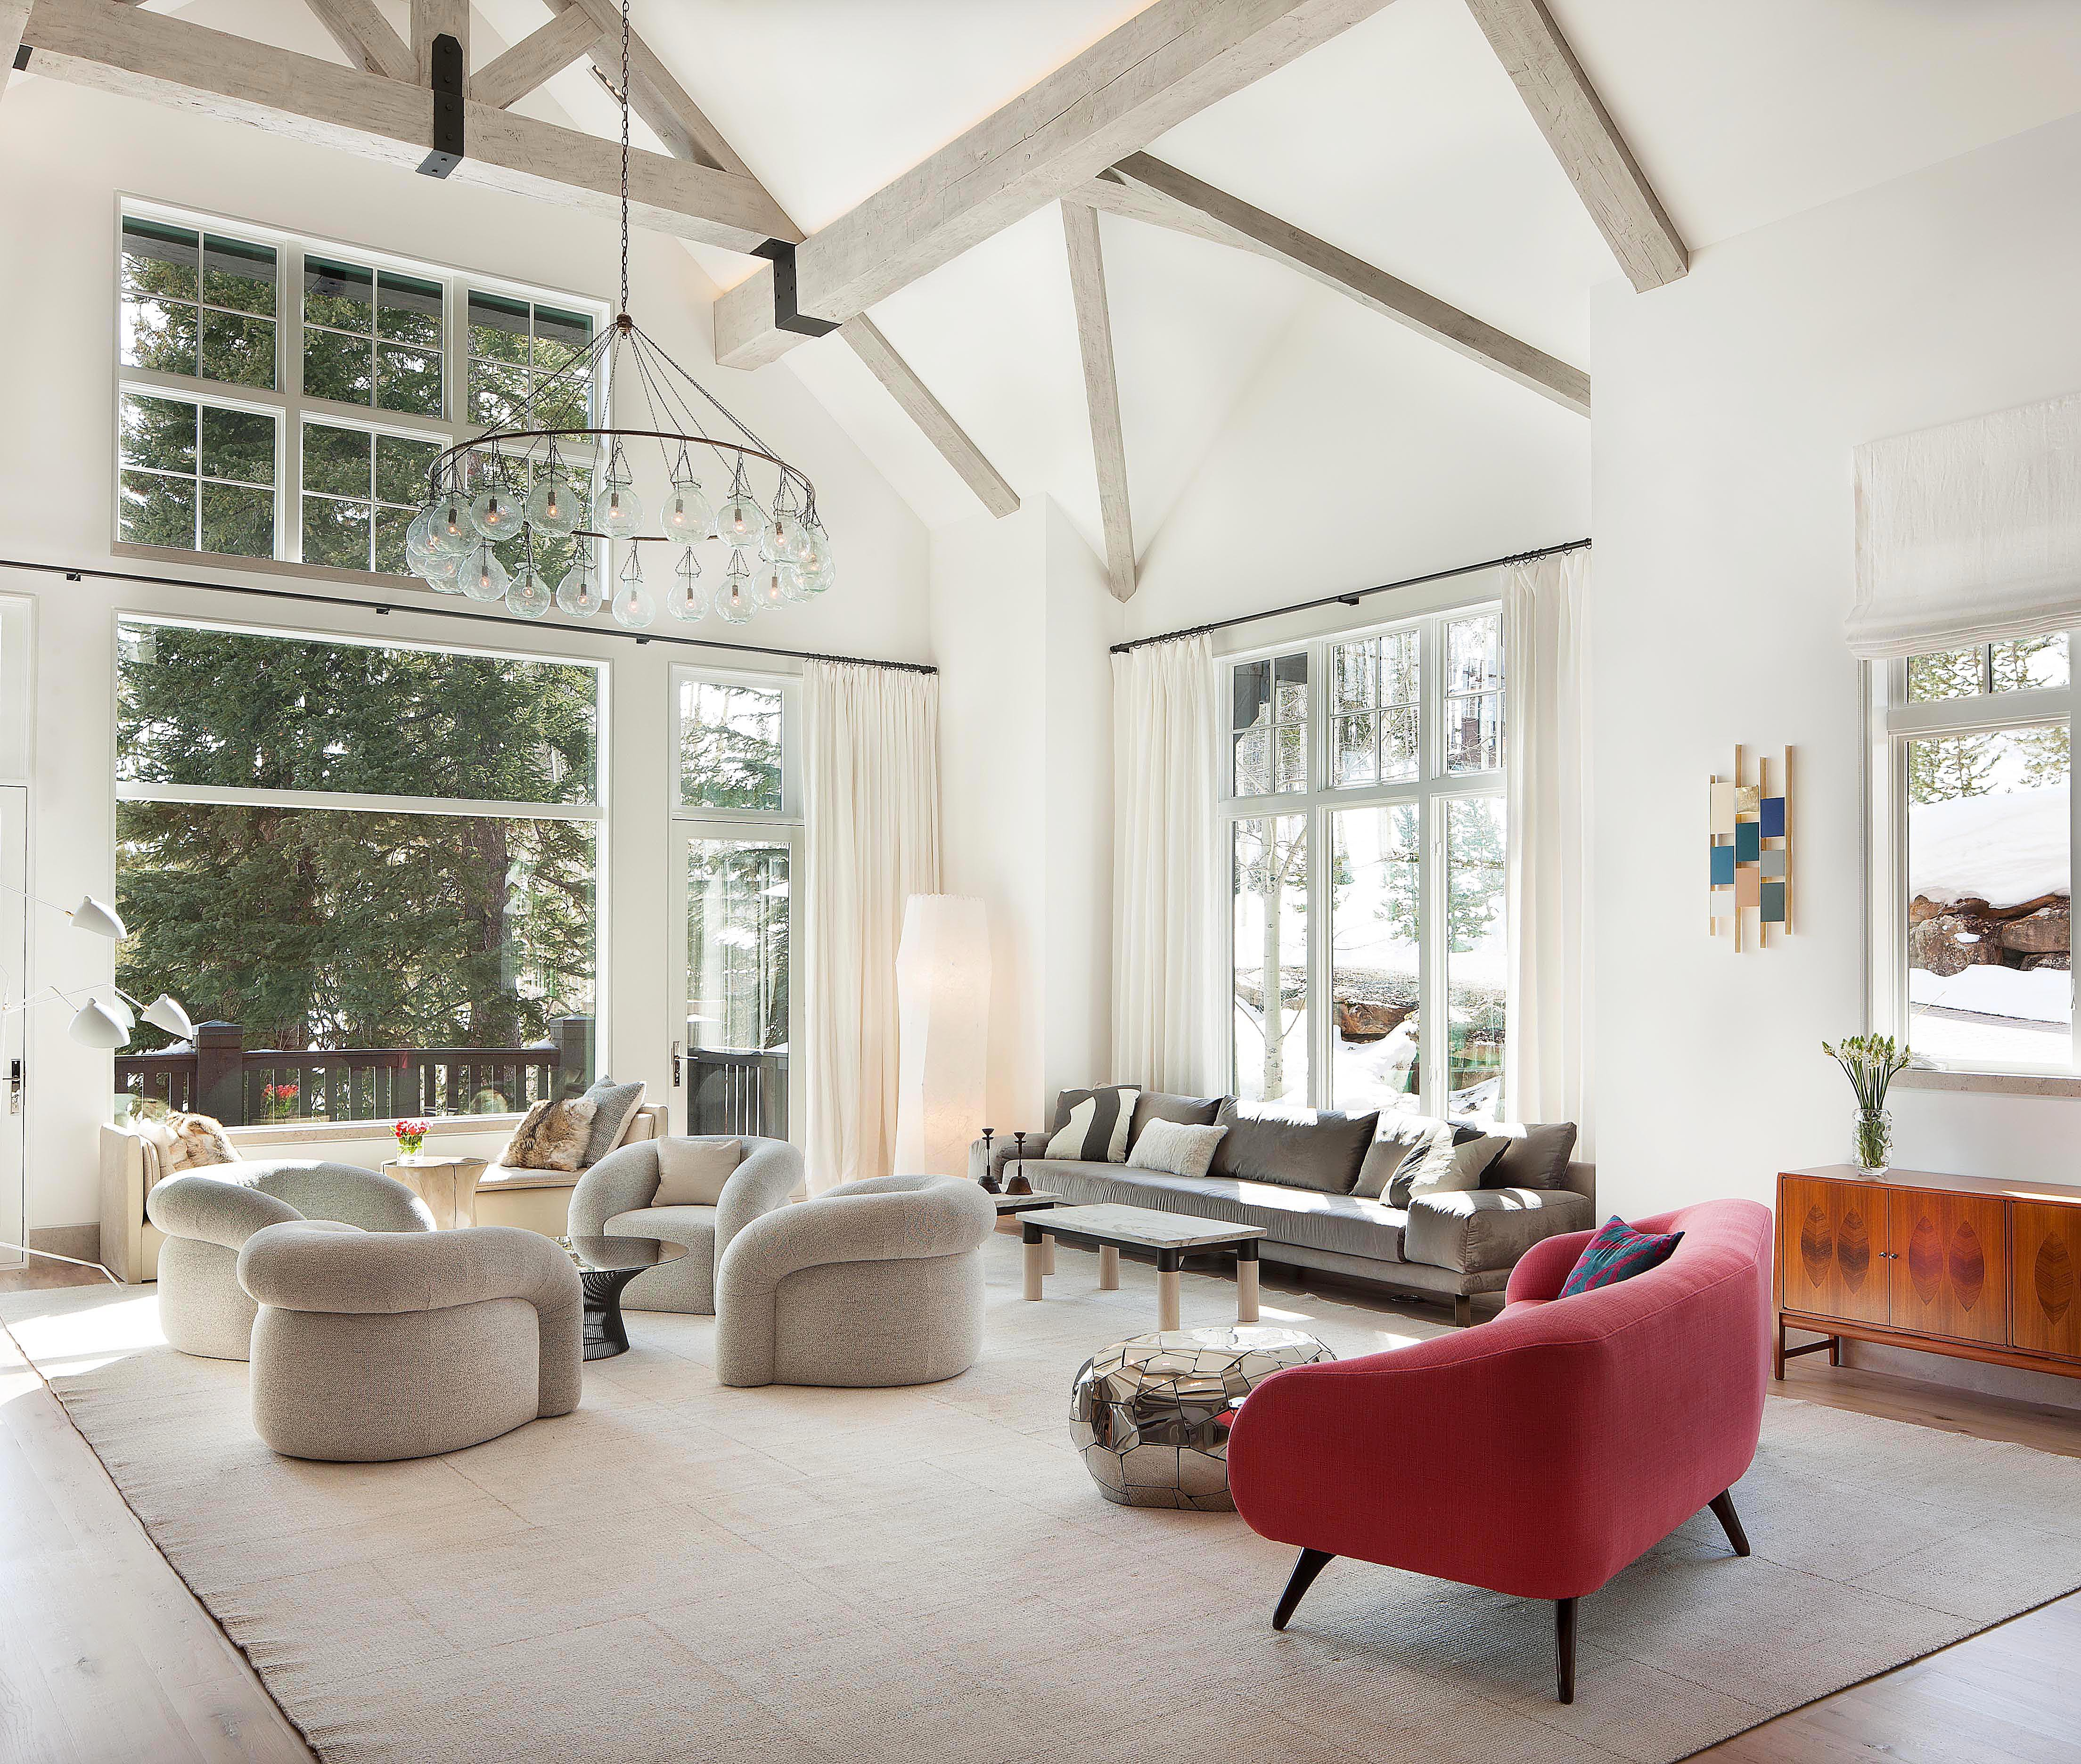 Beaver creek getaway a colorado lodge with mountain views and tons of natural light was transformed by tori from a dark traditional lodge decor scheme to